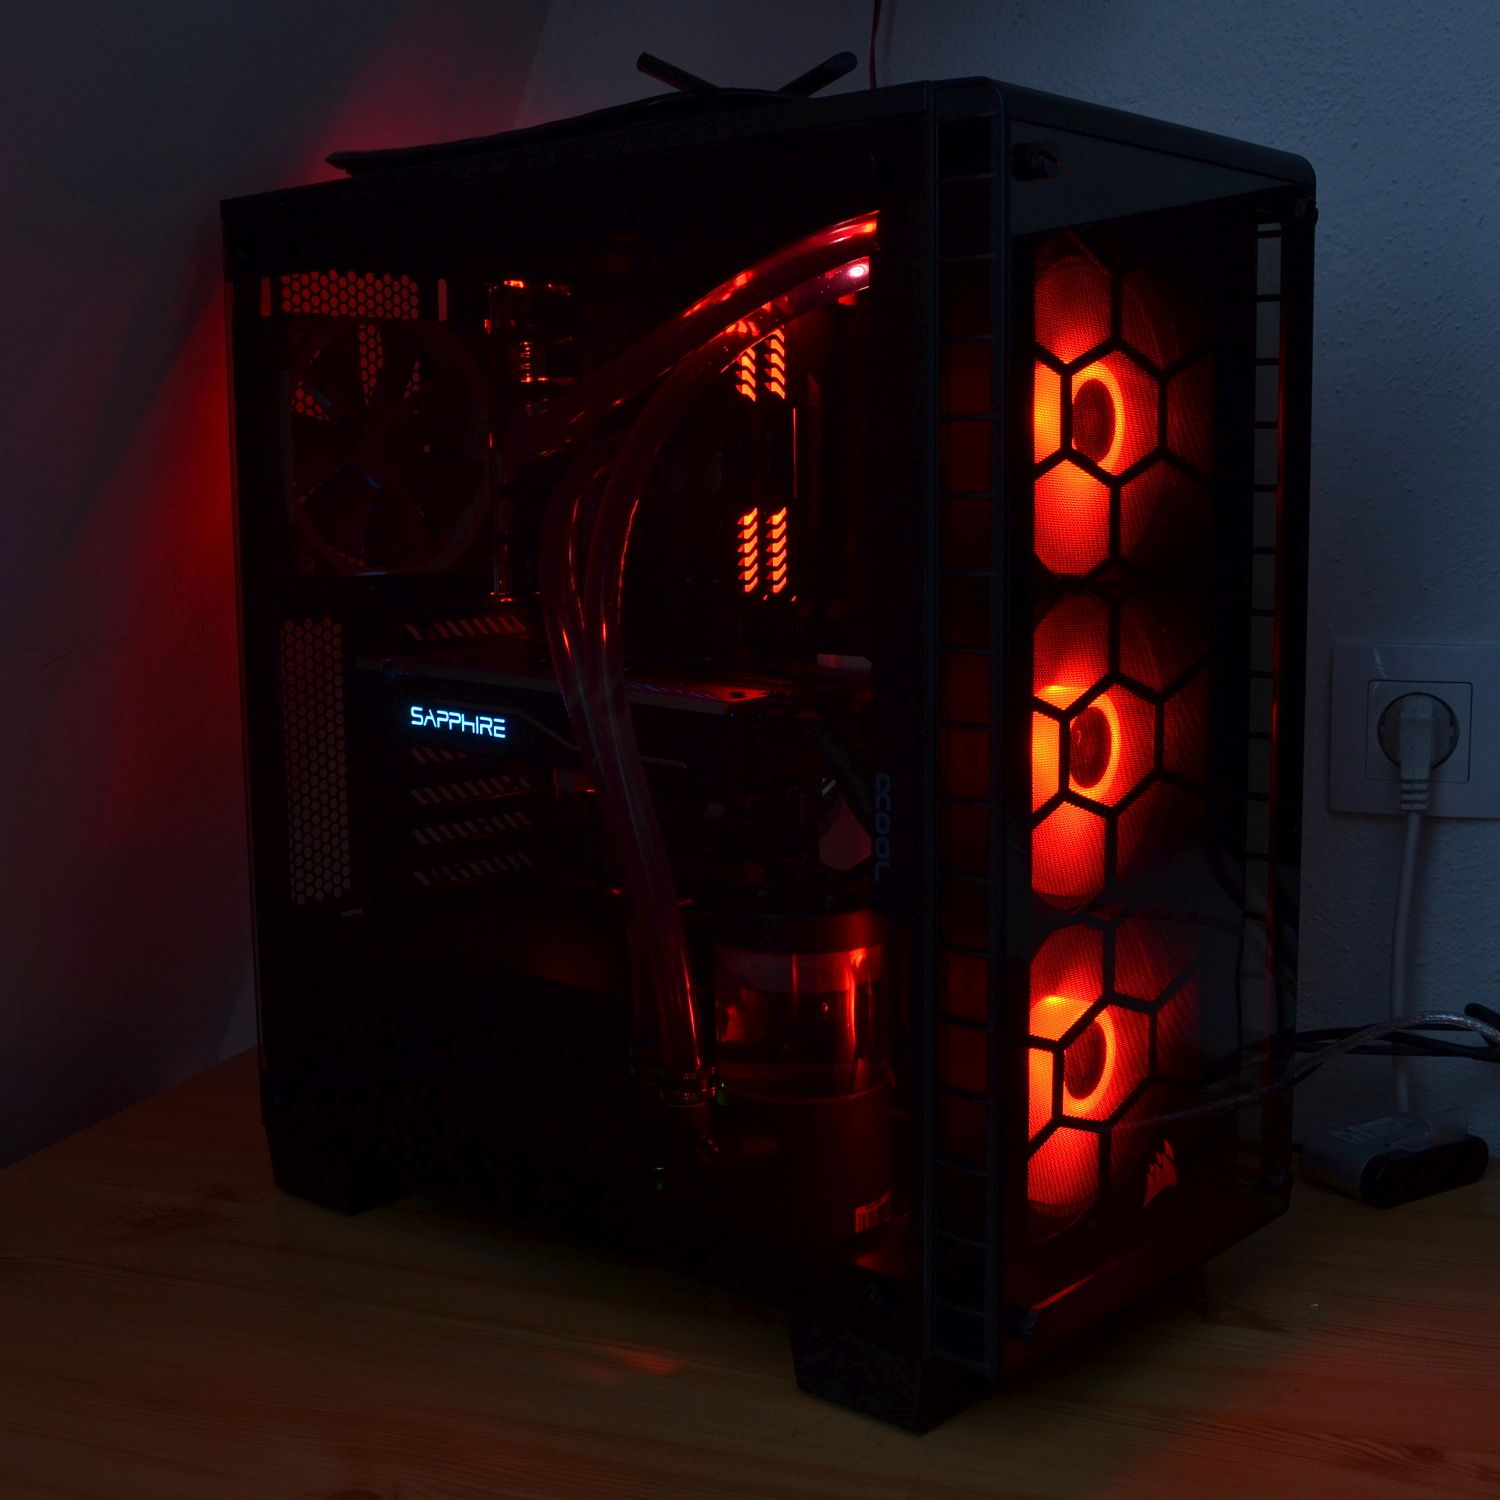 Intel PC 08 case